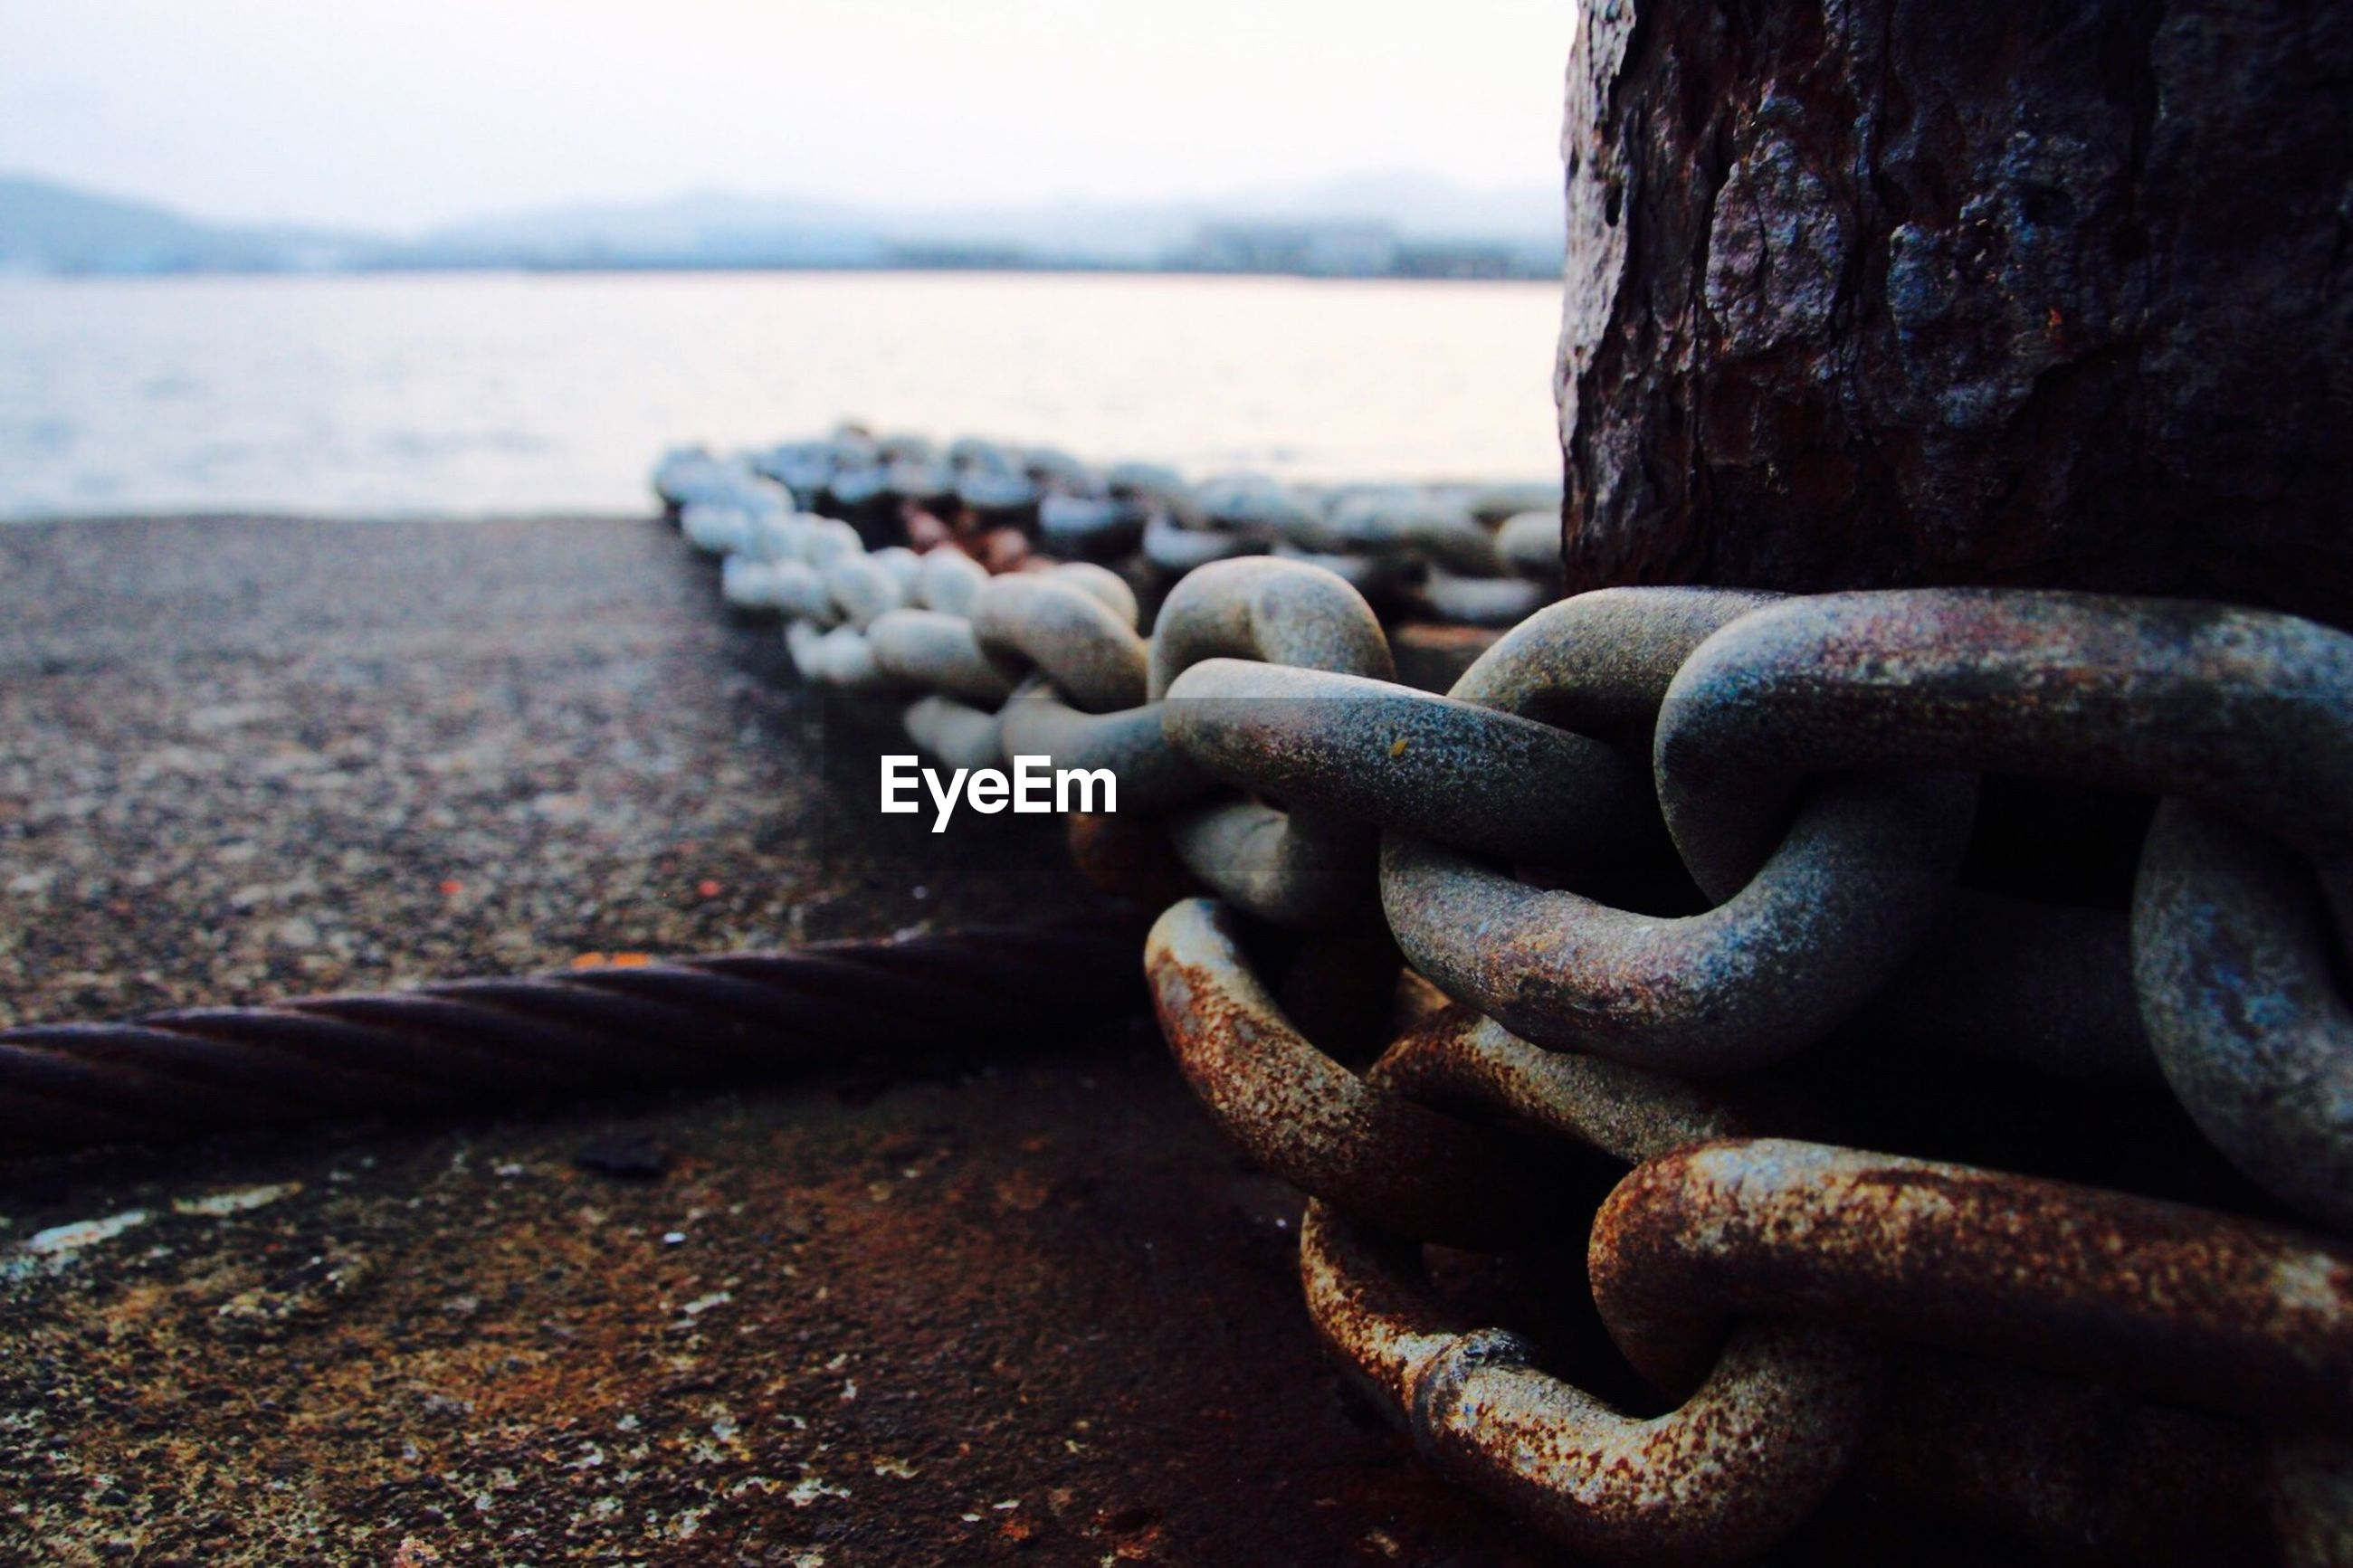 metal, focus on foreground, close-up, rusty, metallic, strength, chain, sea, textured, protection, water, old, safety, day, outdoors, rope, weathered, selective focus, tranquility, railing